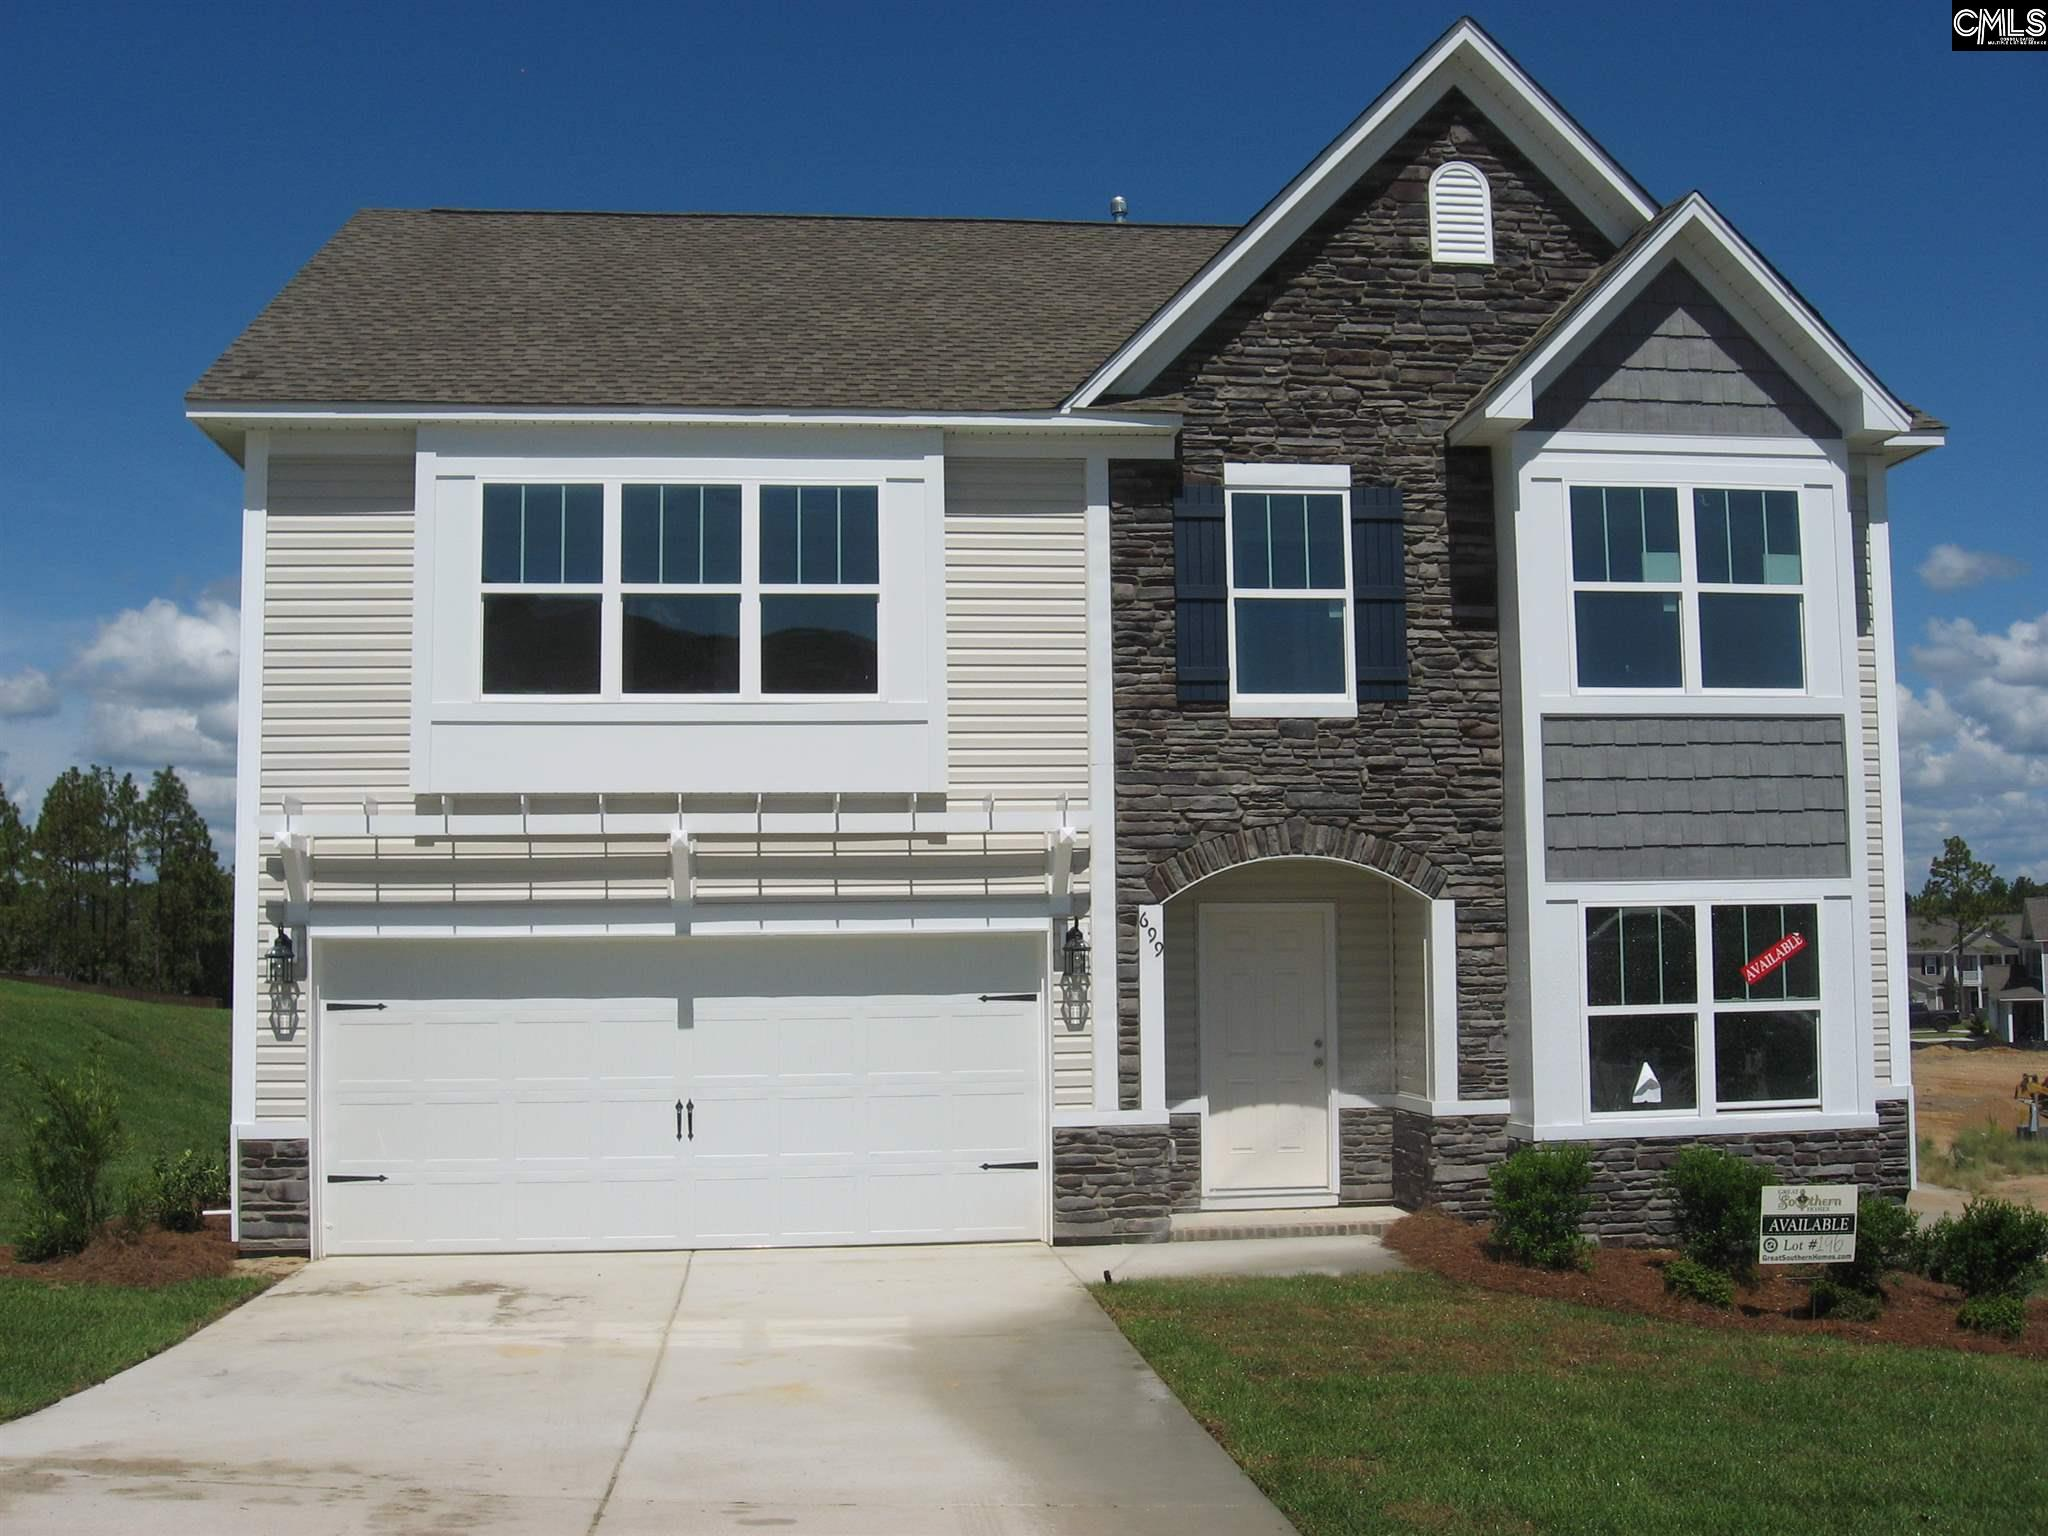 71 Fieldrush #197 Columbia, SC 29229